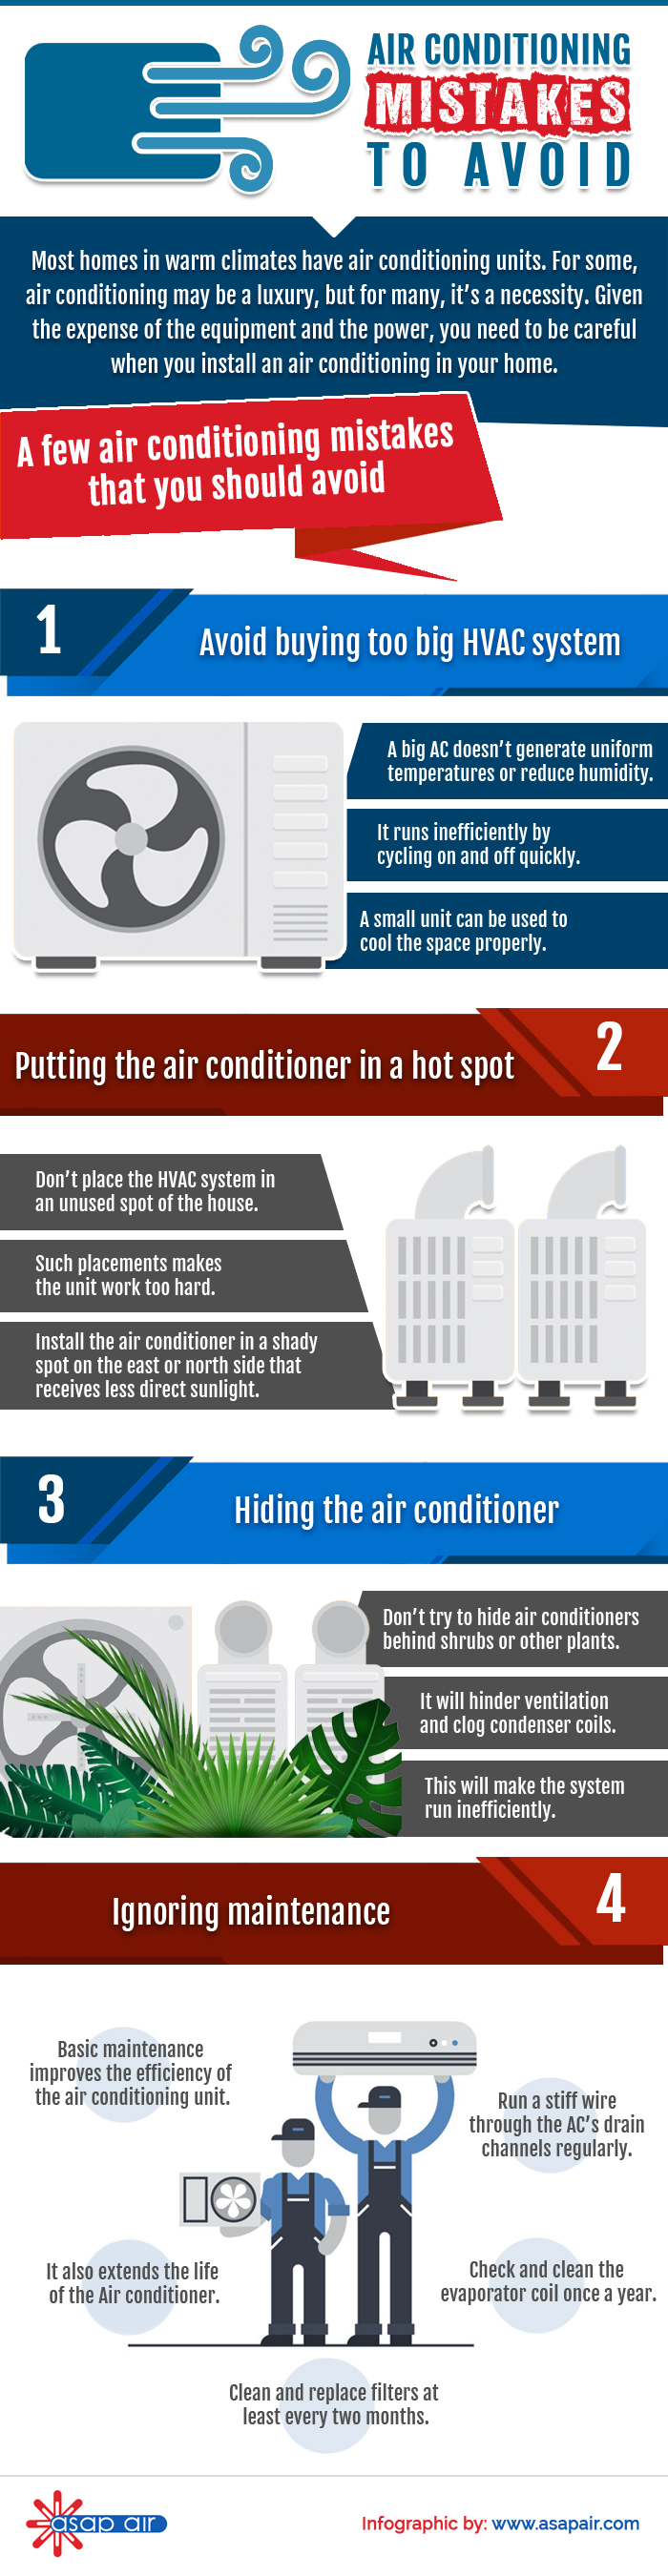 Air Conditioning Mistakes To Avoid